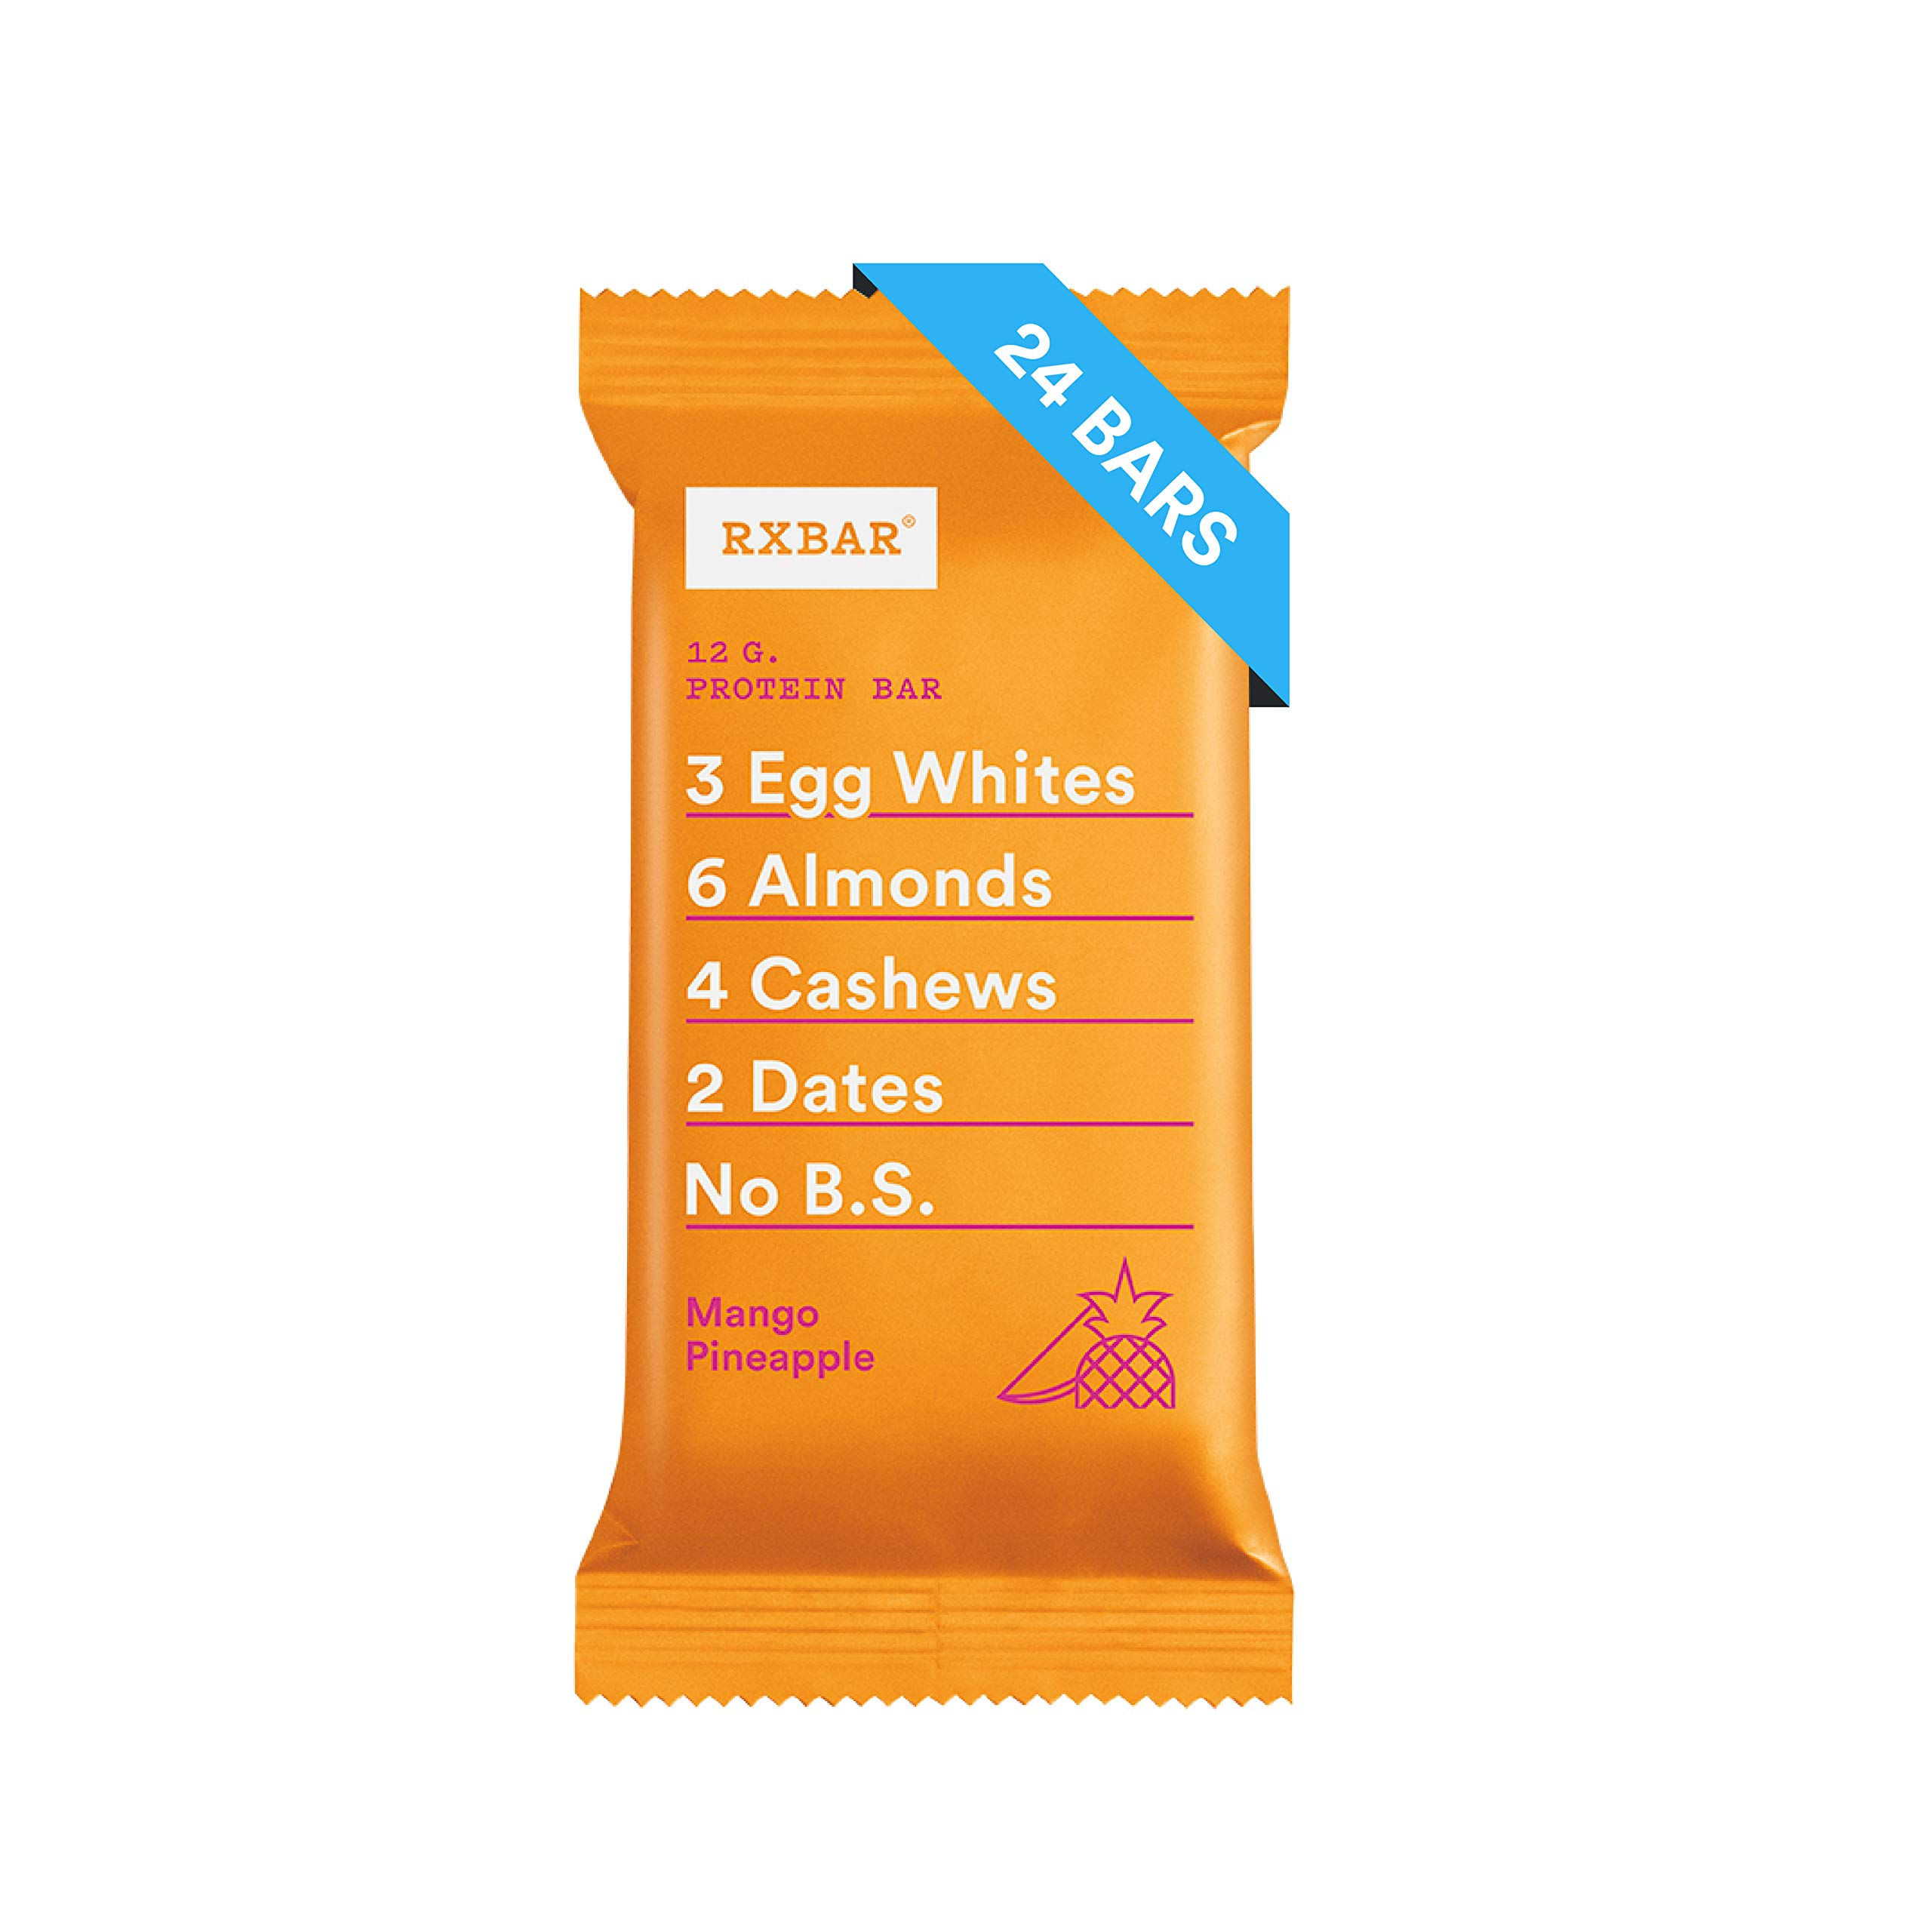 RXBAR Real Food Protein Bar, Mango Pineapple, Gluten Free, 1.83oz Bars, 24 Count by RXBAR (Image #1)